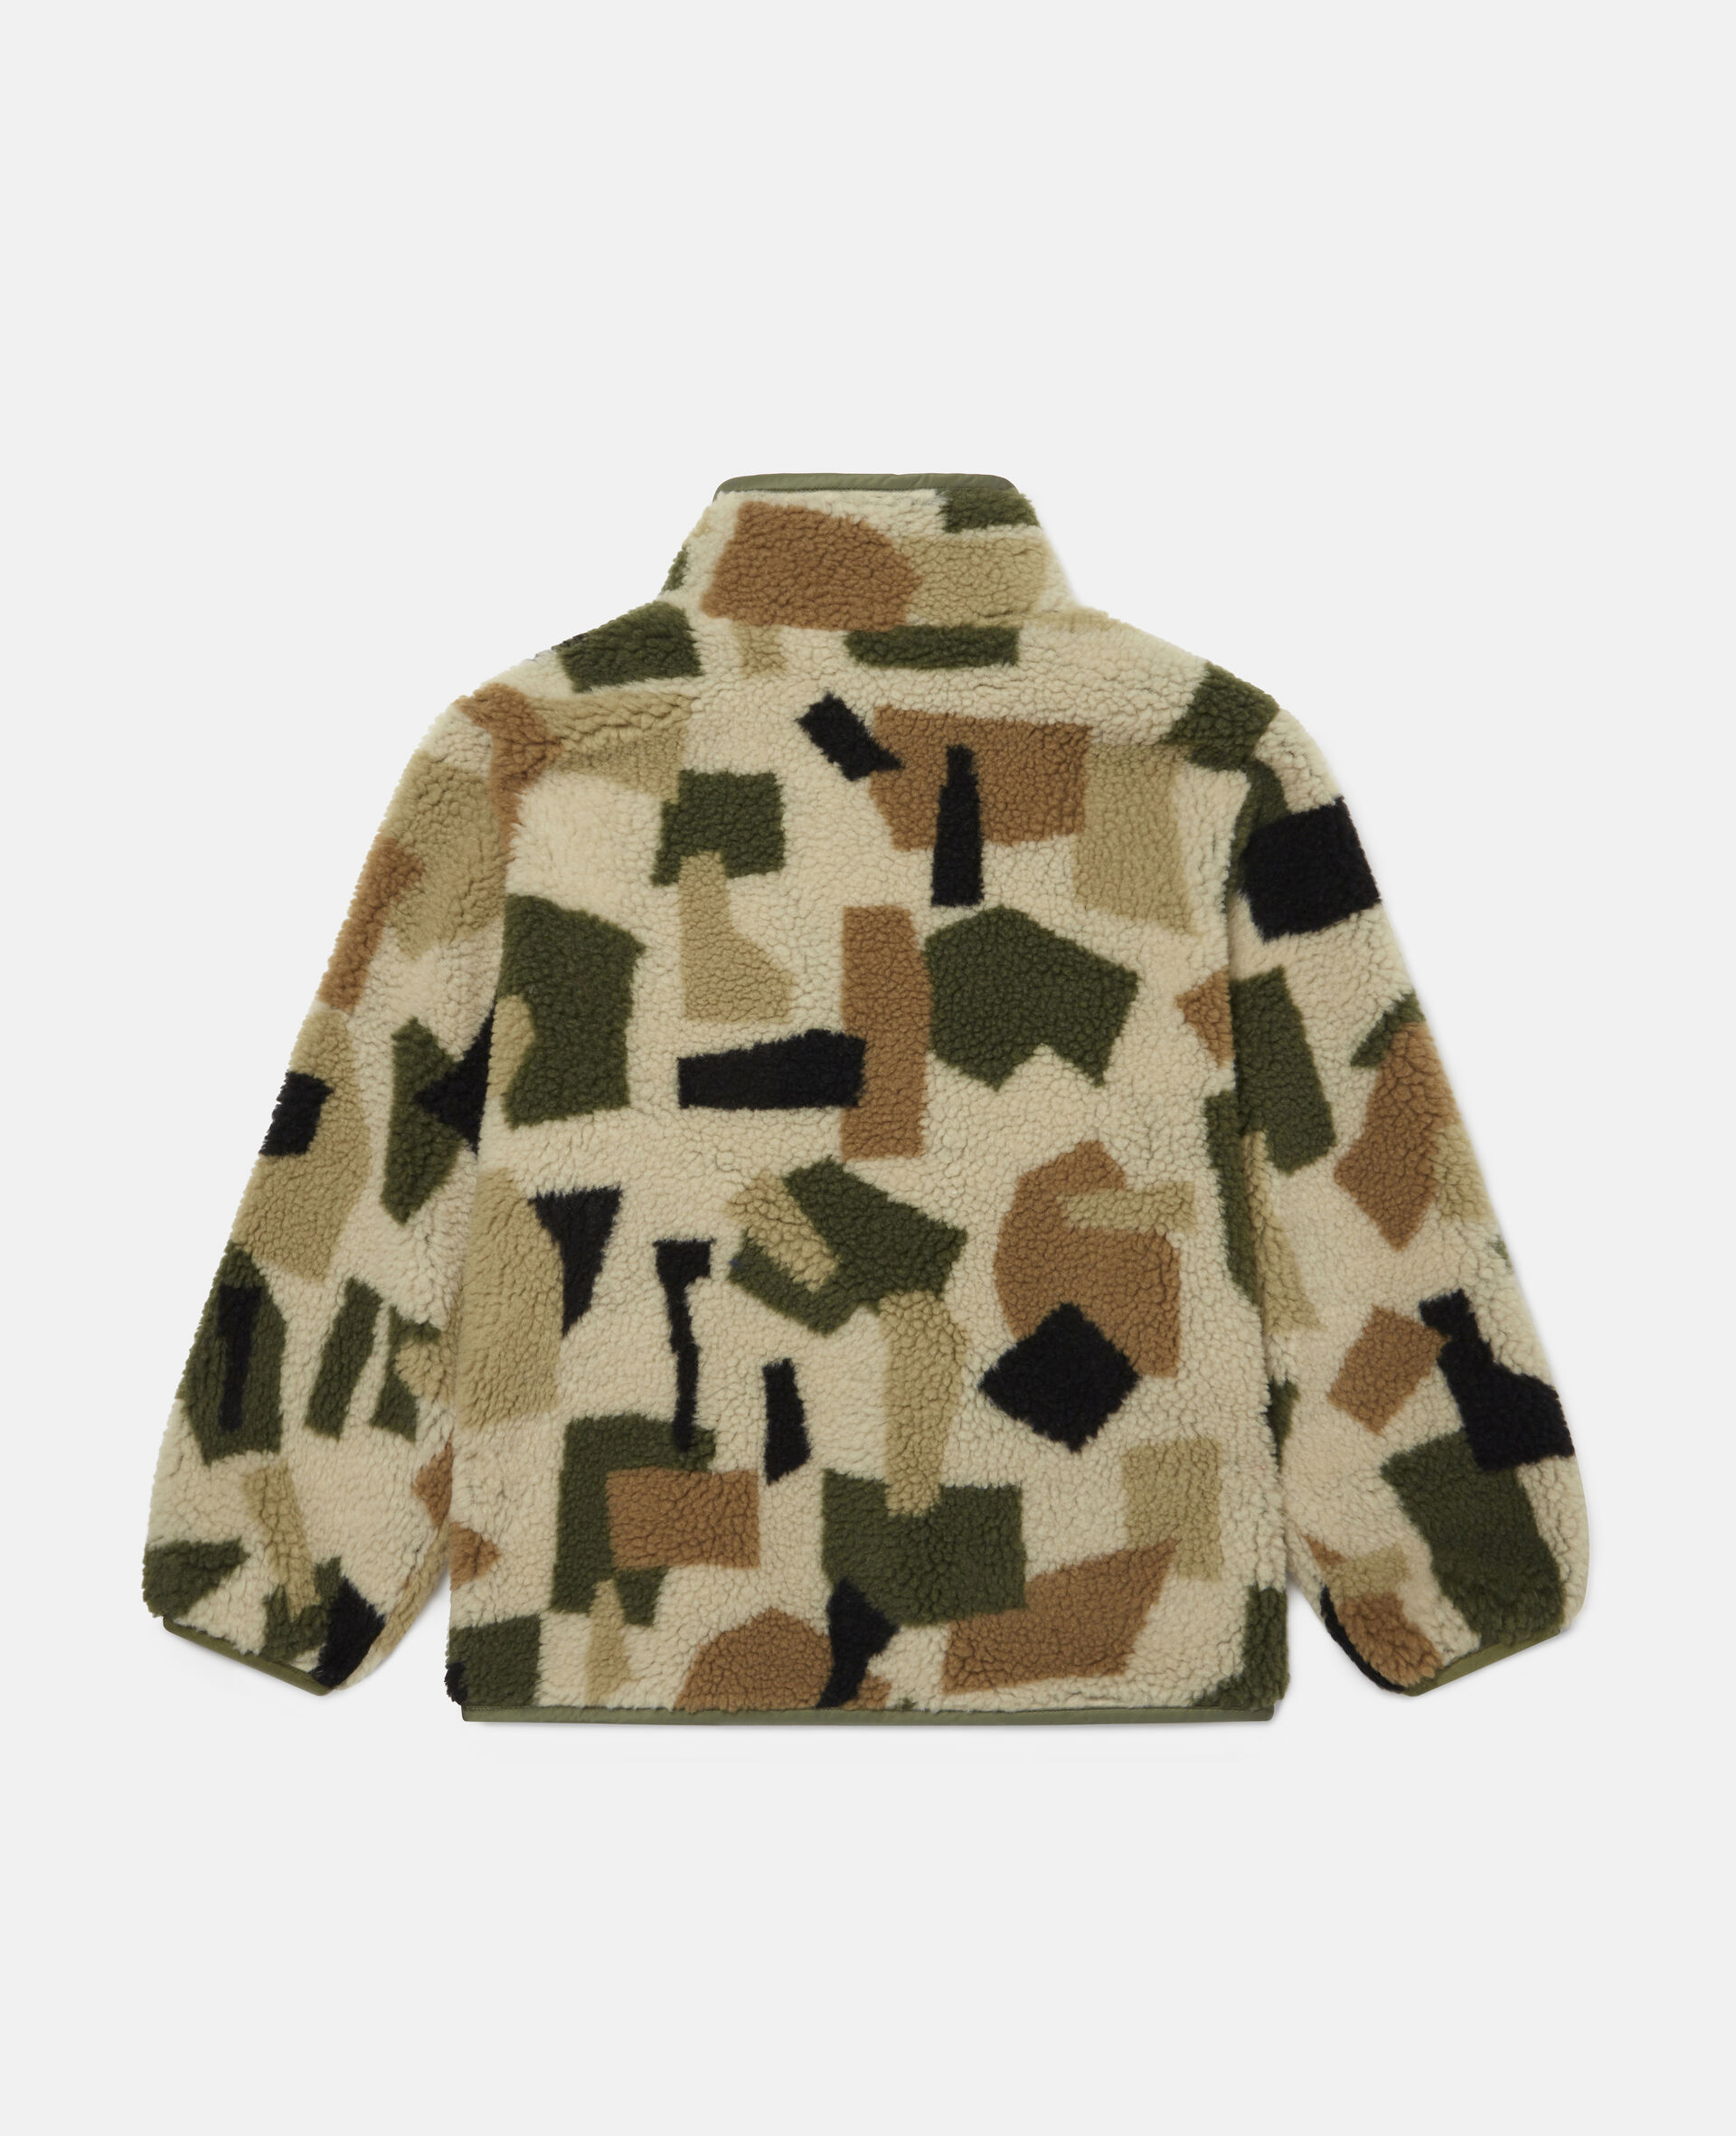 Giacca in Teddy Camouflage Militare-Fantasia-large image number 3